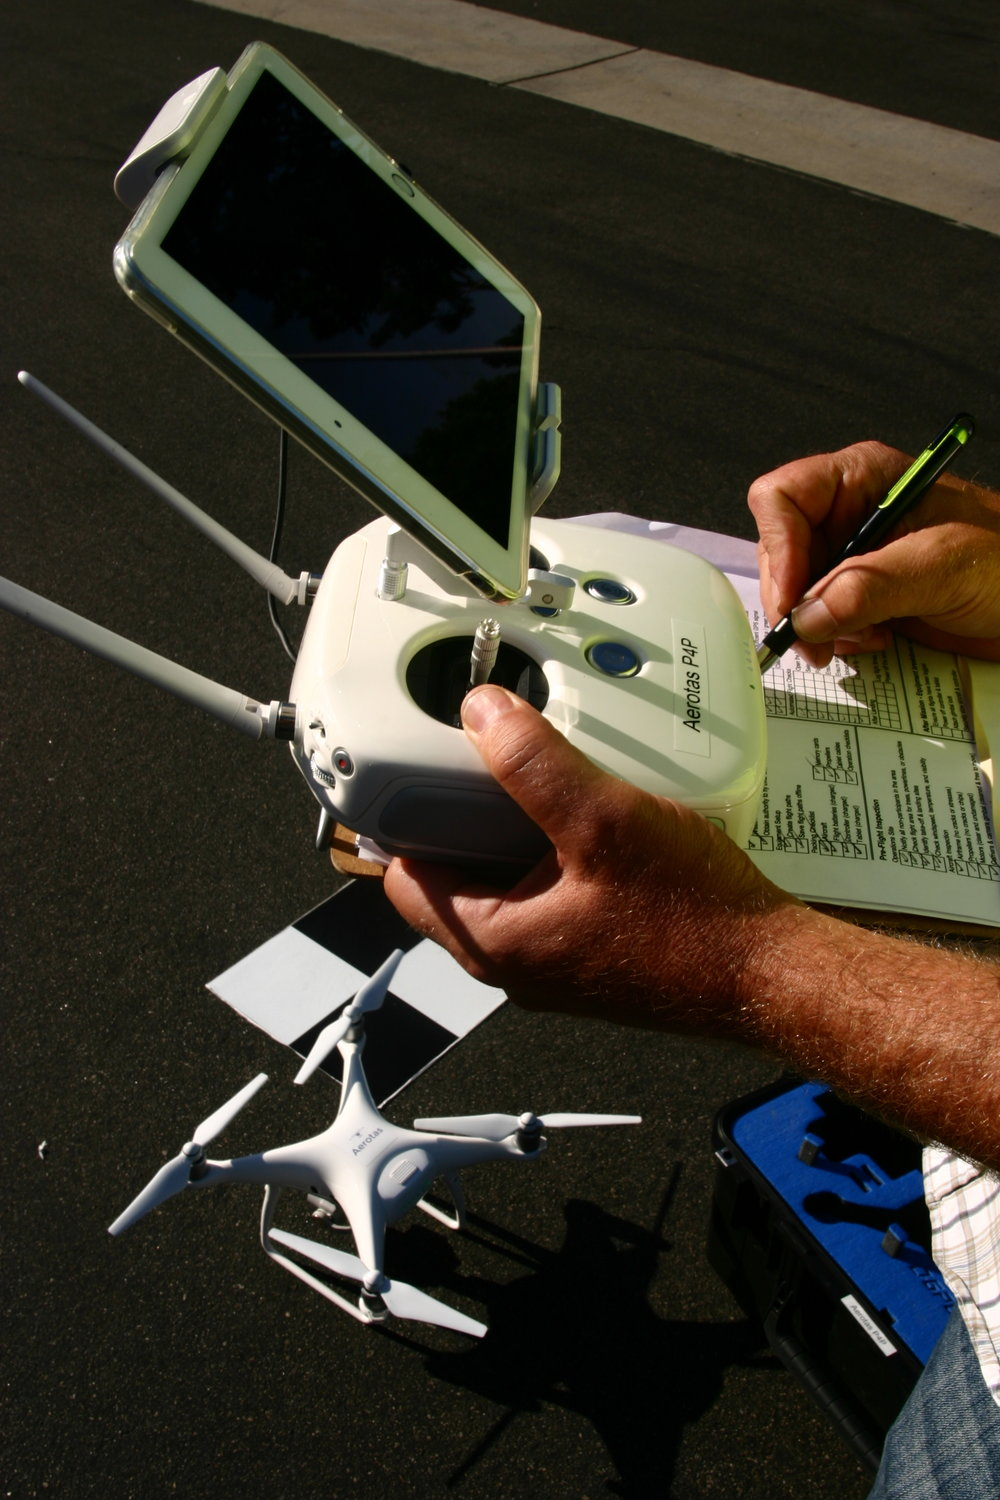 Checklists are an essential part of drone survey mission